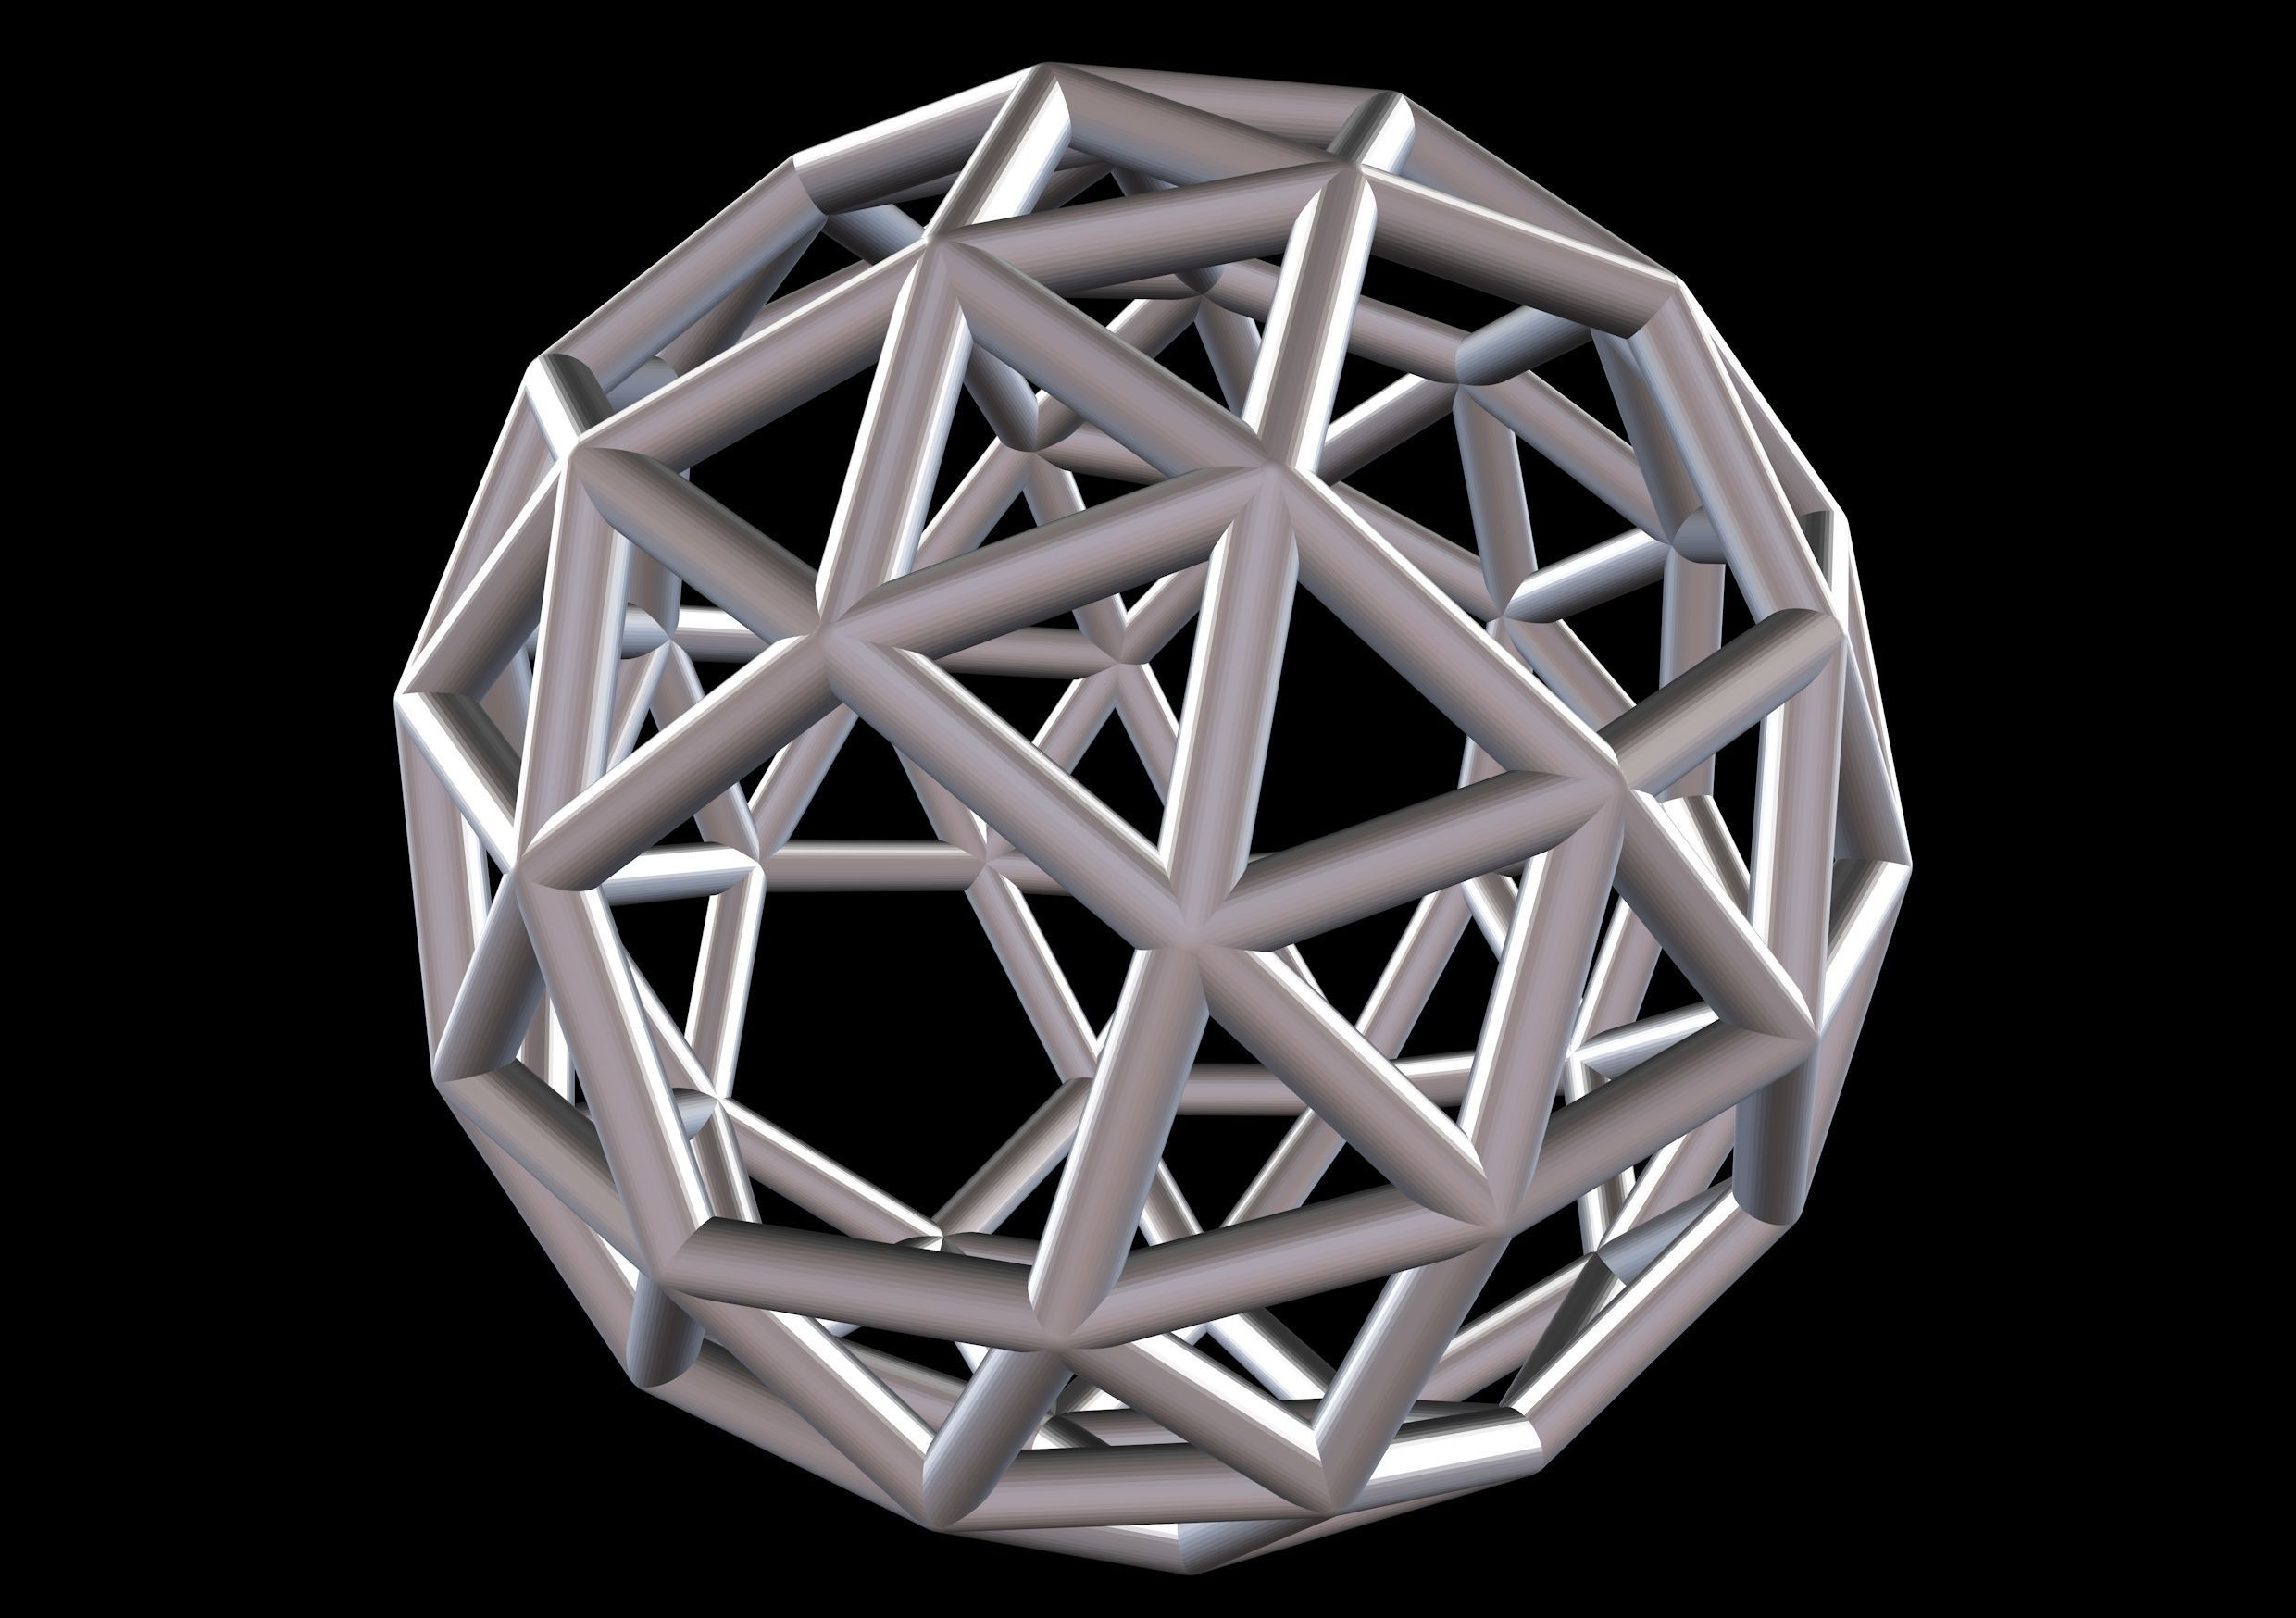 037 Mathart - Archimedean Solids - Snub Dodecahedron 01 - 10 cm